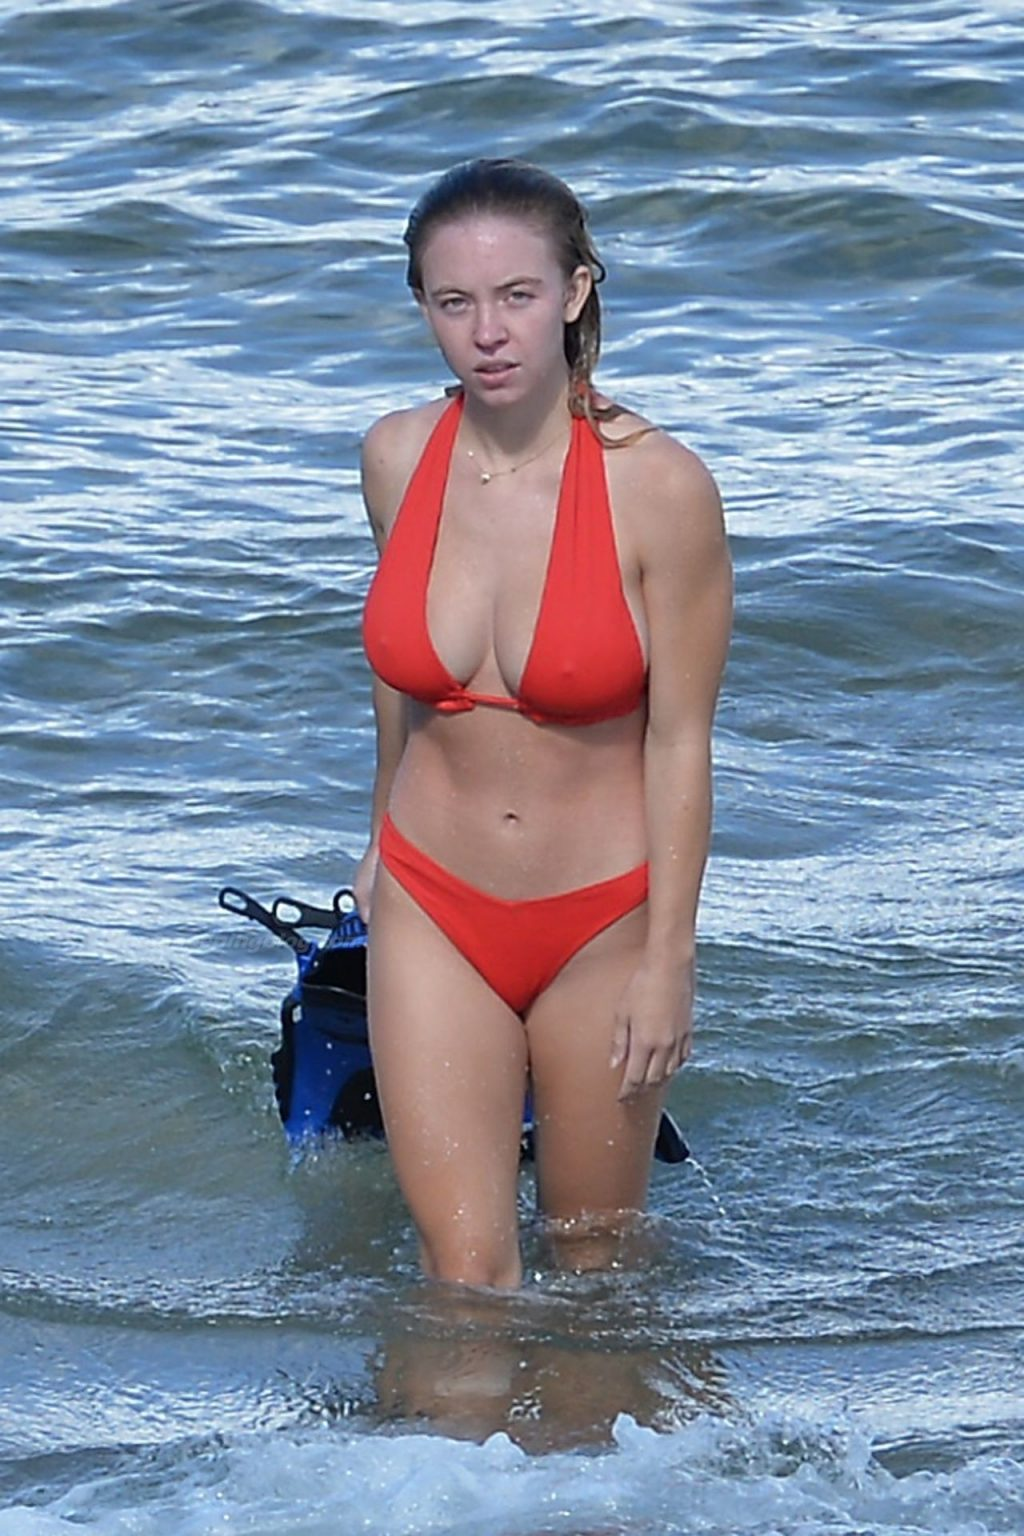 Sydney Sweeney Sizzles in a Red Bikini While Going Snorkeling in Hawaii (18 Photos)